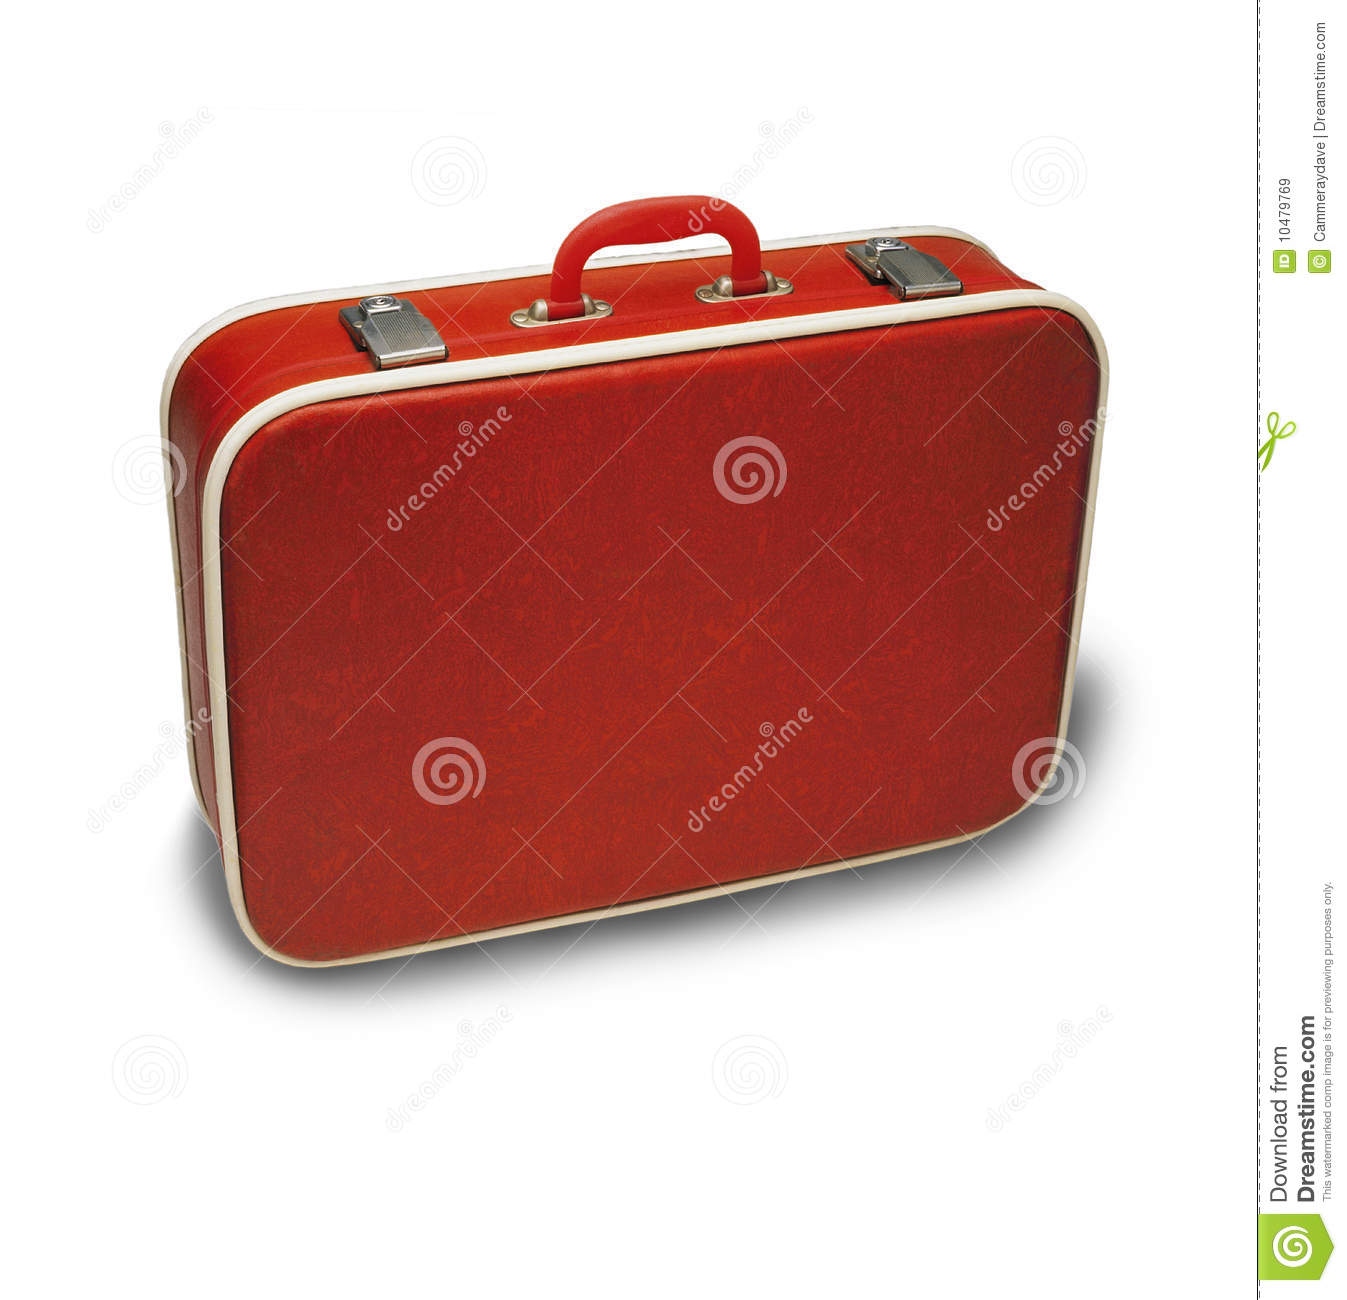 Suitcase Stock Photos, Images, & Pictures - 88,763 Images